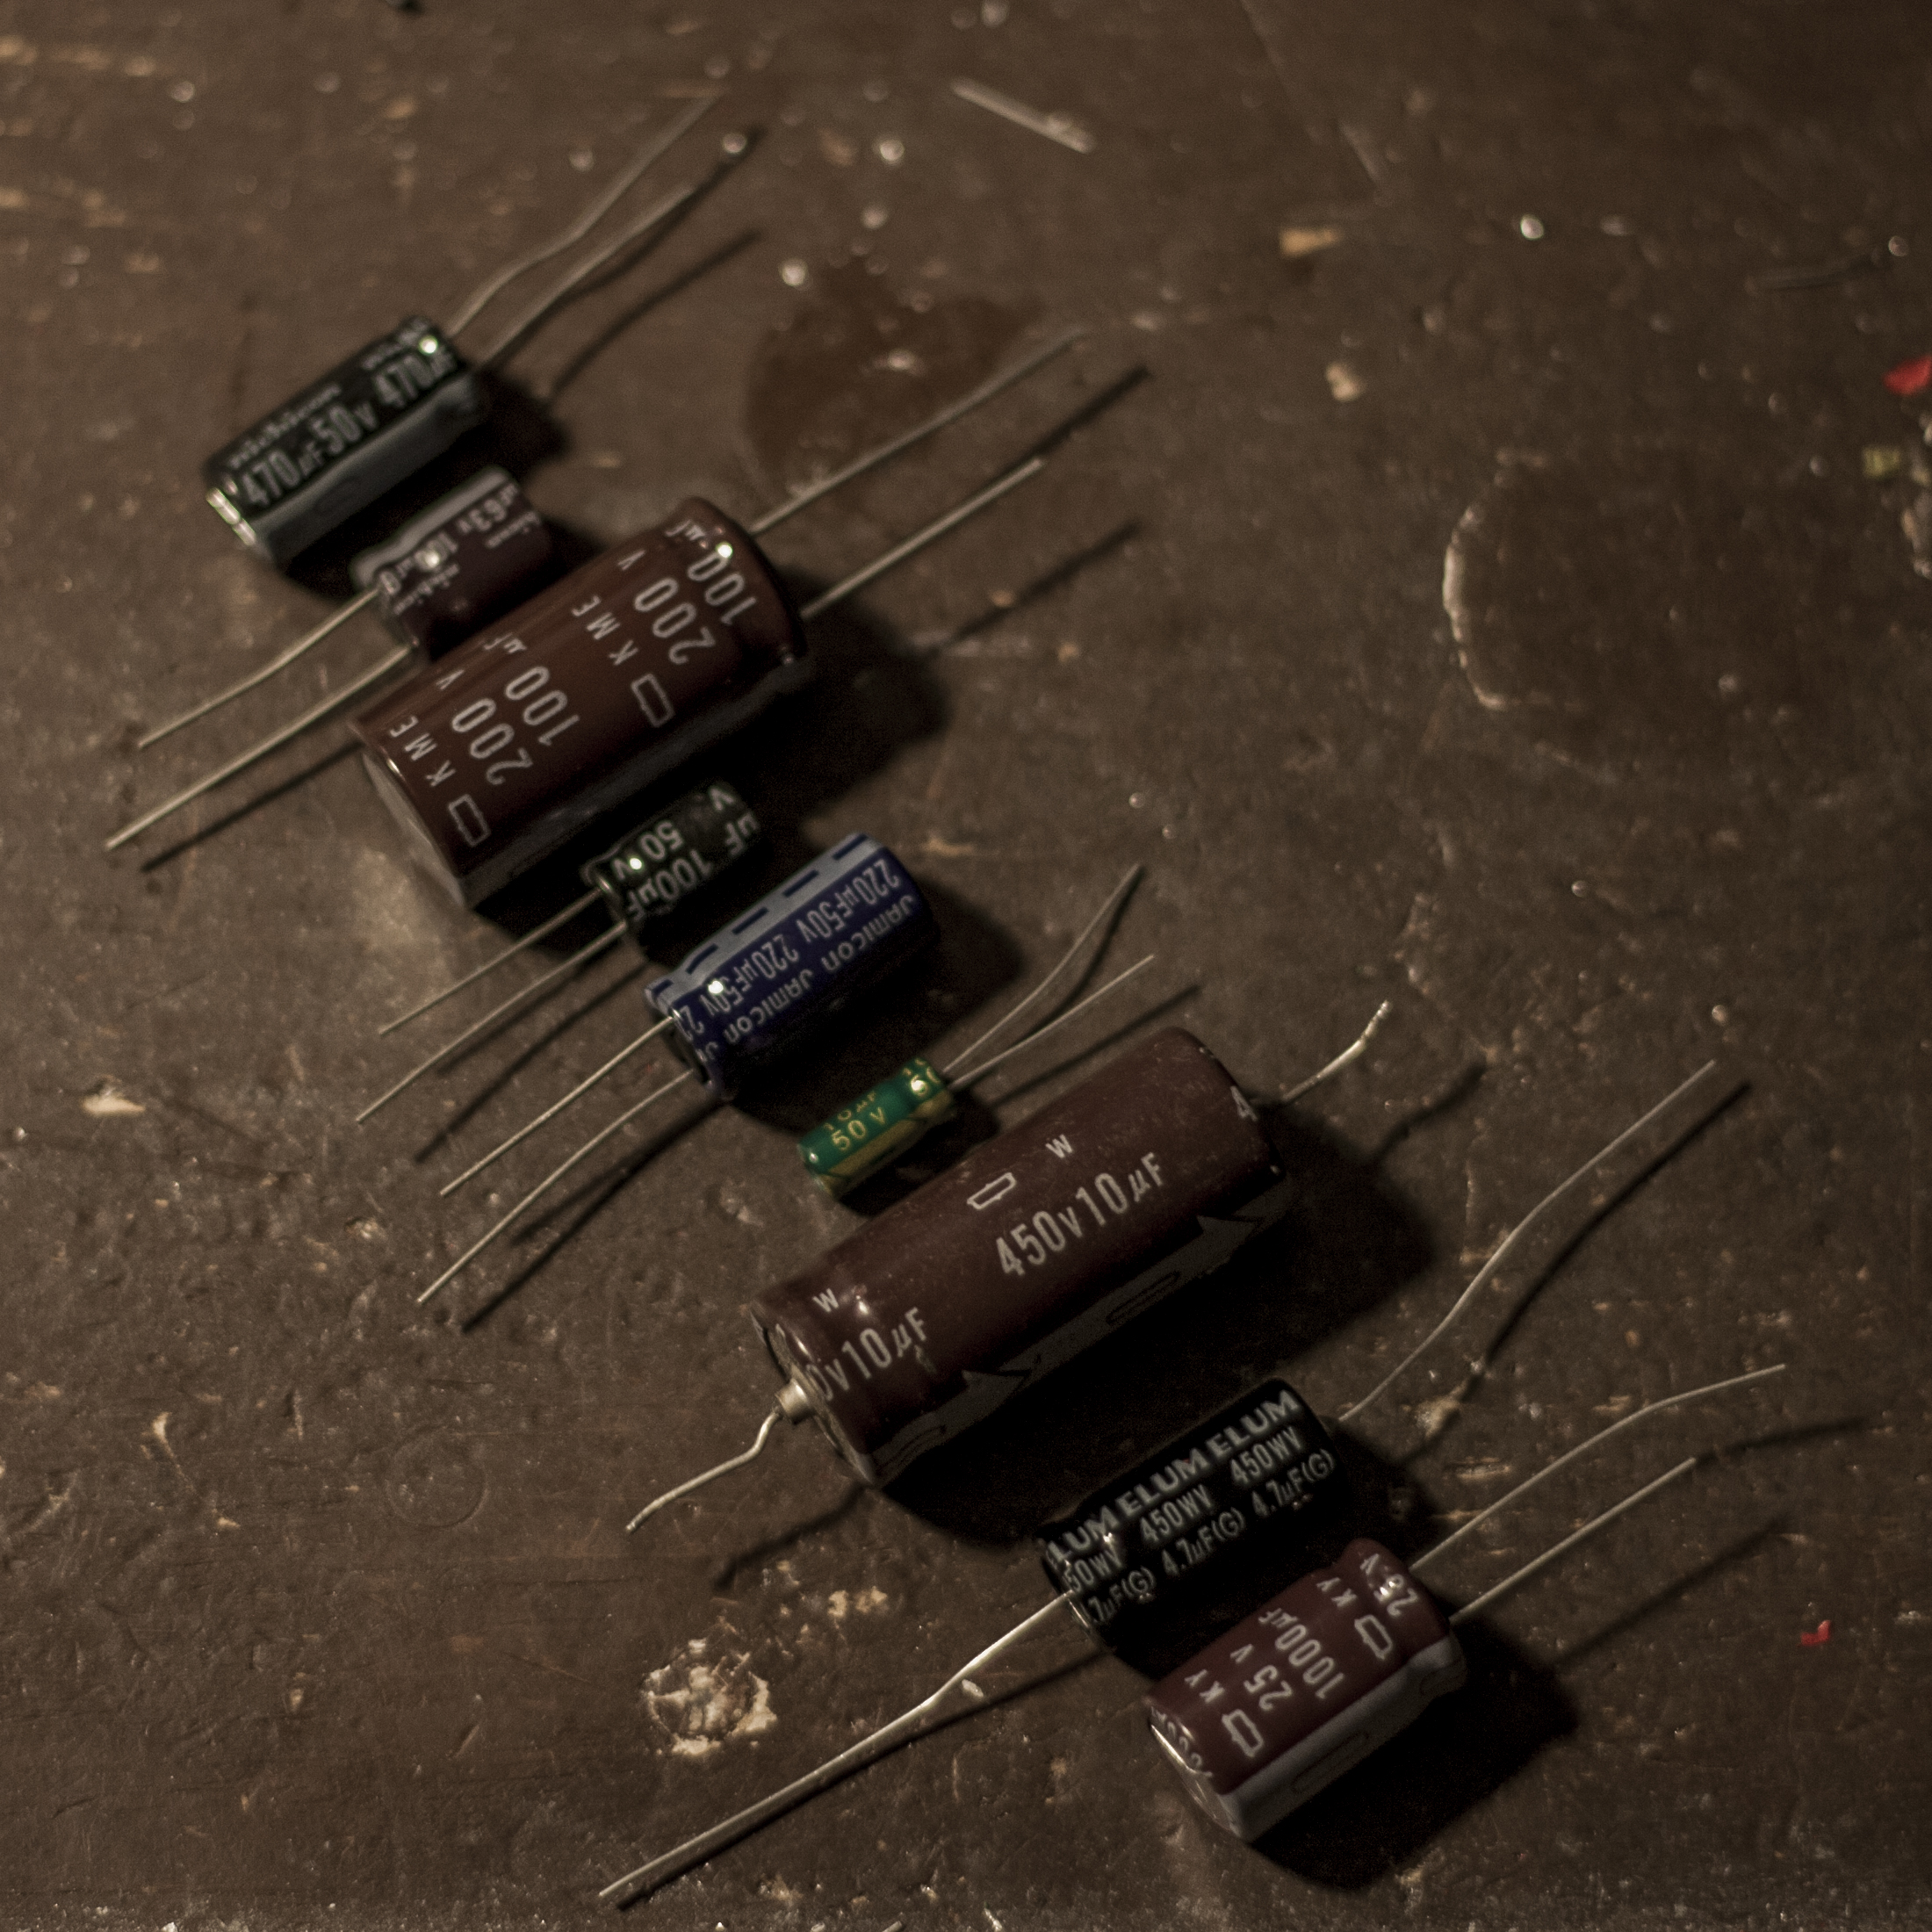 Capacitors Or How I Learned To Stop Worrying And Love The Ceramic Do Work In A Circuit Electrolytic Electro Caps Are Second Worst Kind But Theyre Only Option For Values Above 10 Uf Why They Suck